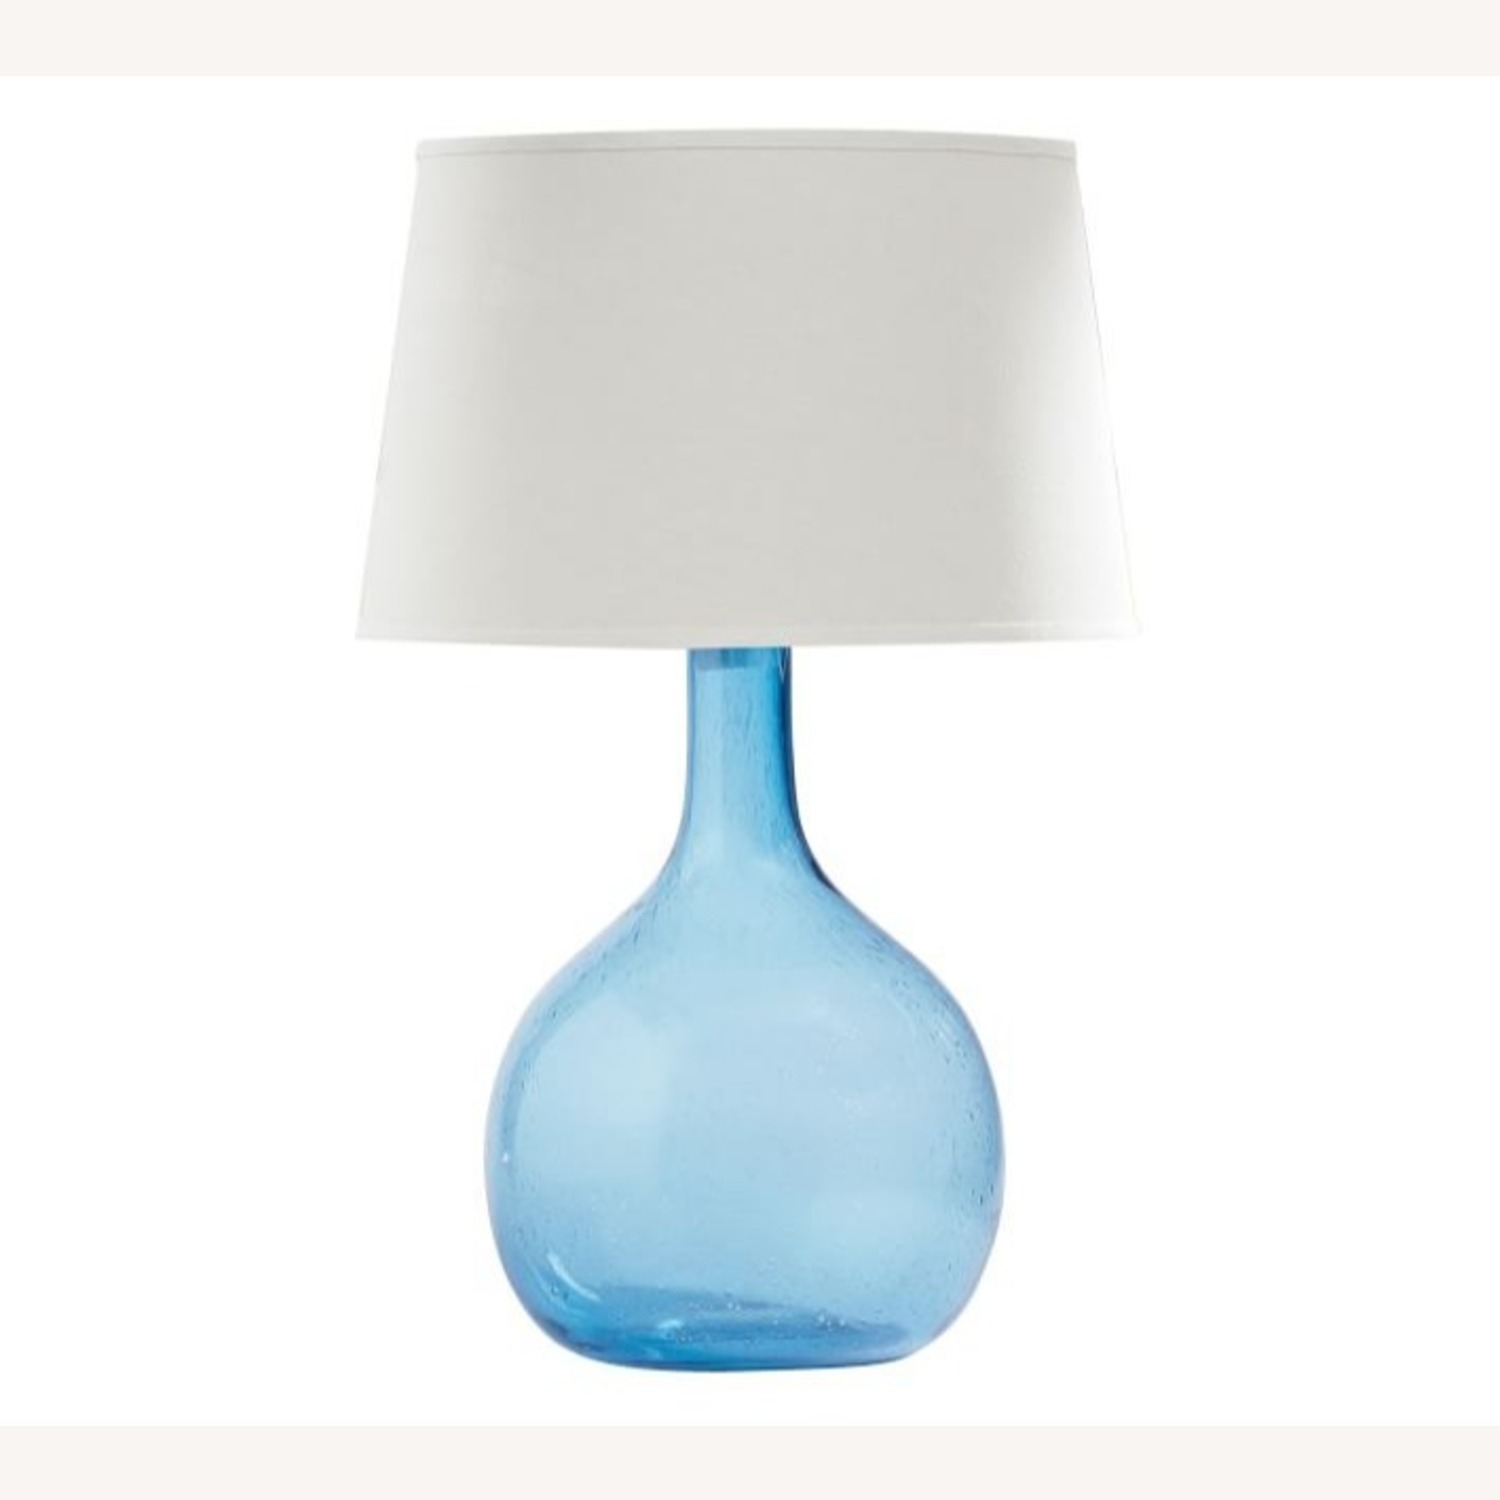 Pottery Barn Eva Colored Glass Table Lamps (blue) - image-0